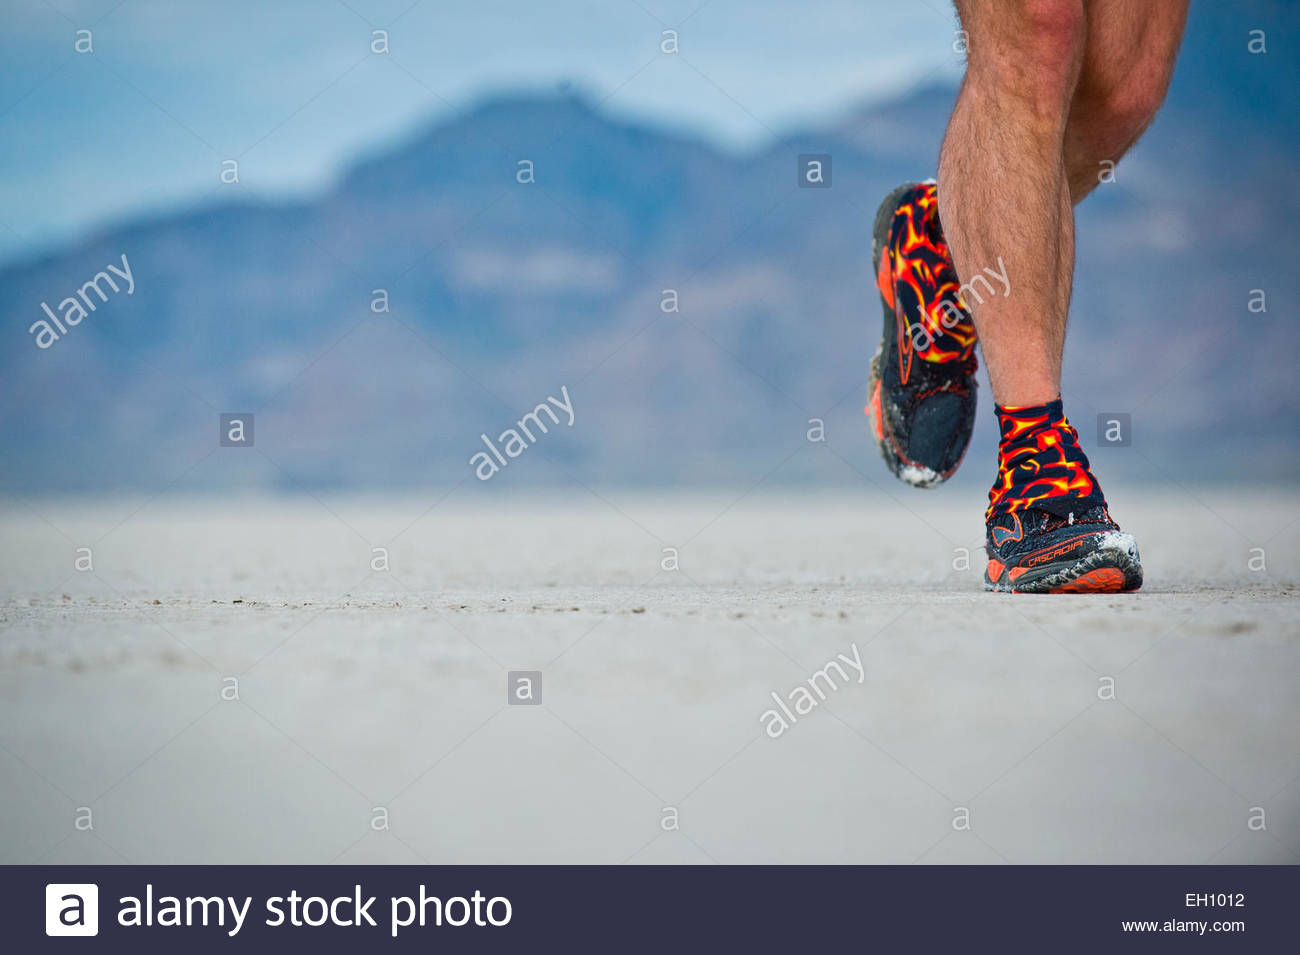 A close-up of a runners sneakers during the Slat Flats 100 in Bonneville, Utah. - Stock Image